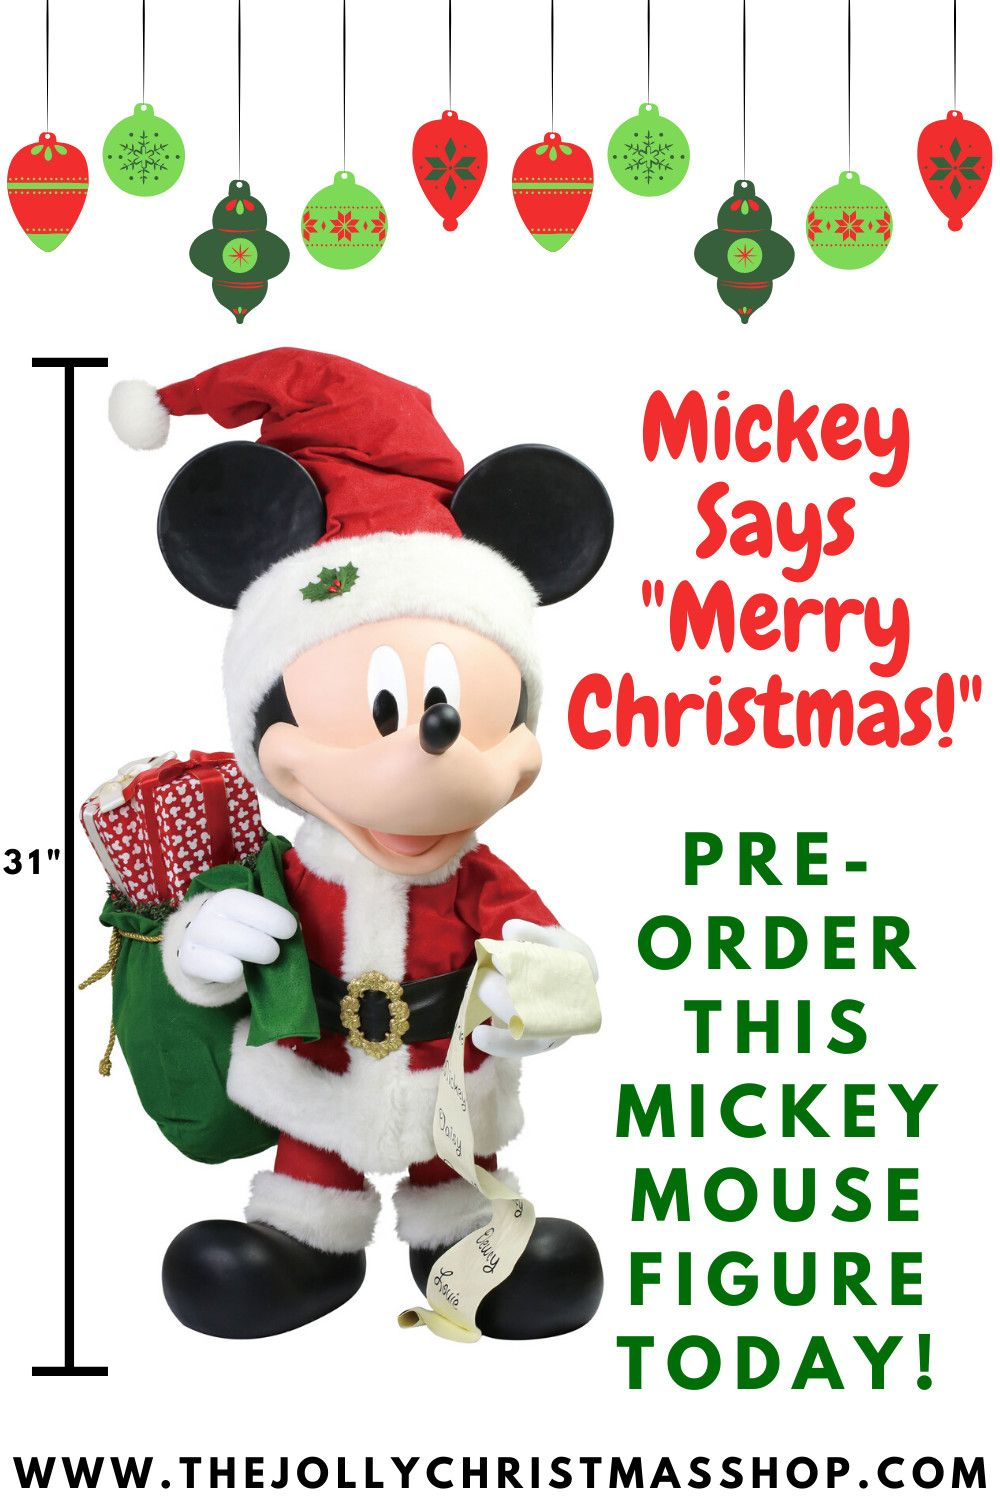 Do you love Disney?? Then you NEED this 31